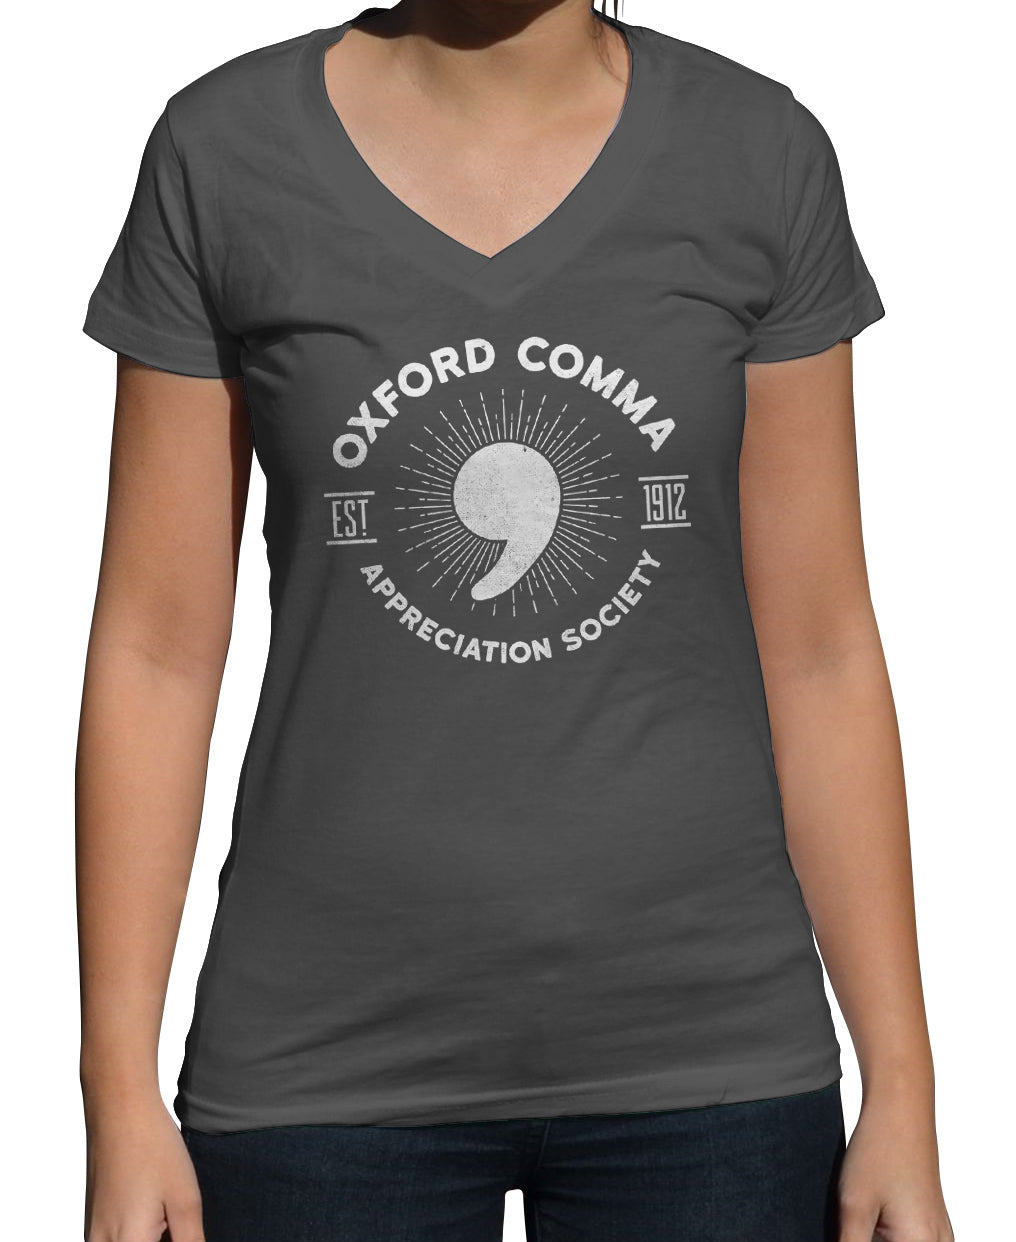 Women's Oxford Comma Appreciation Society Vneck T-Shirt